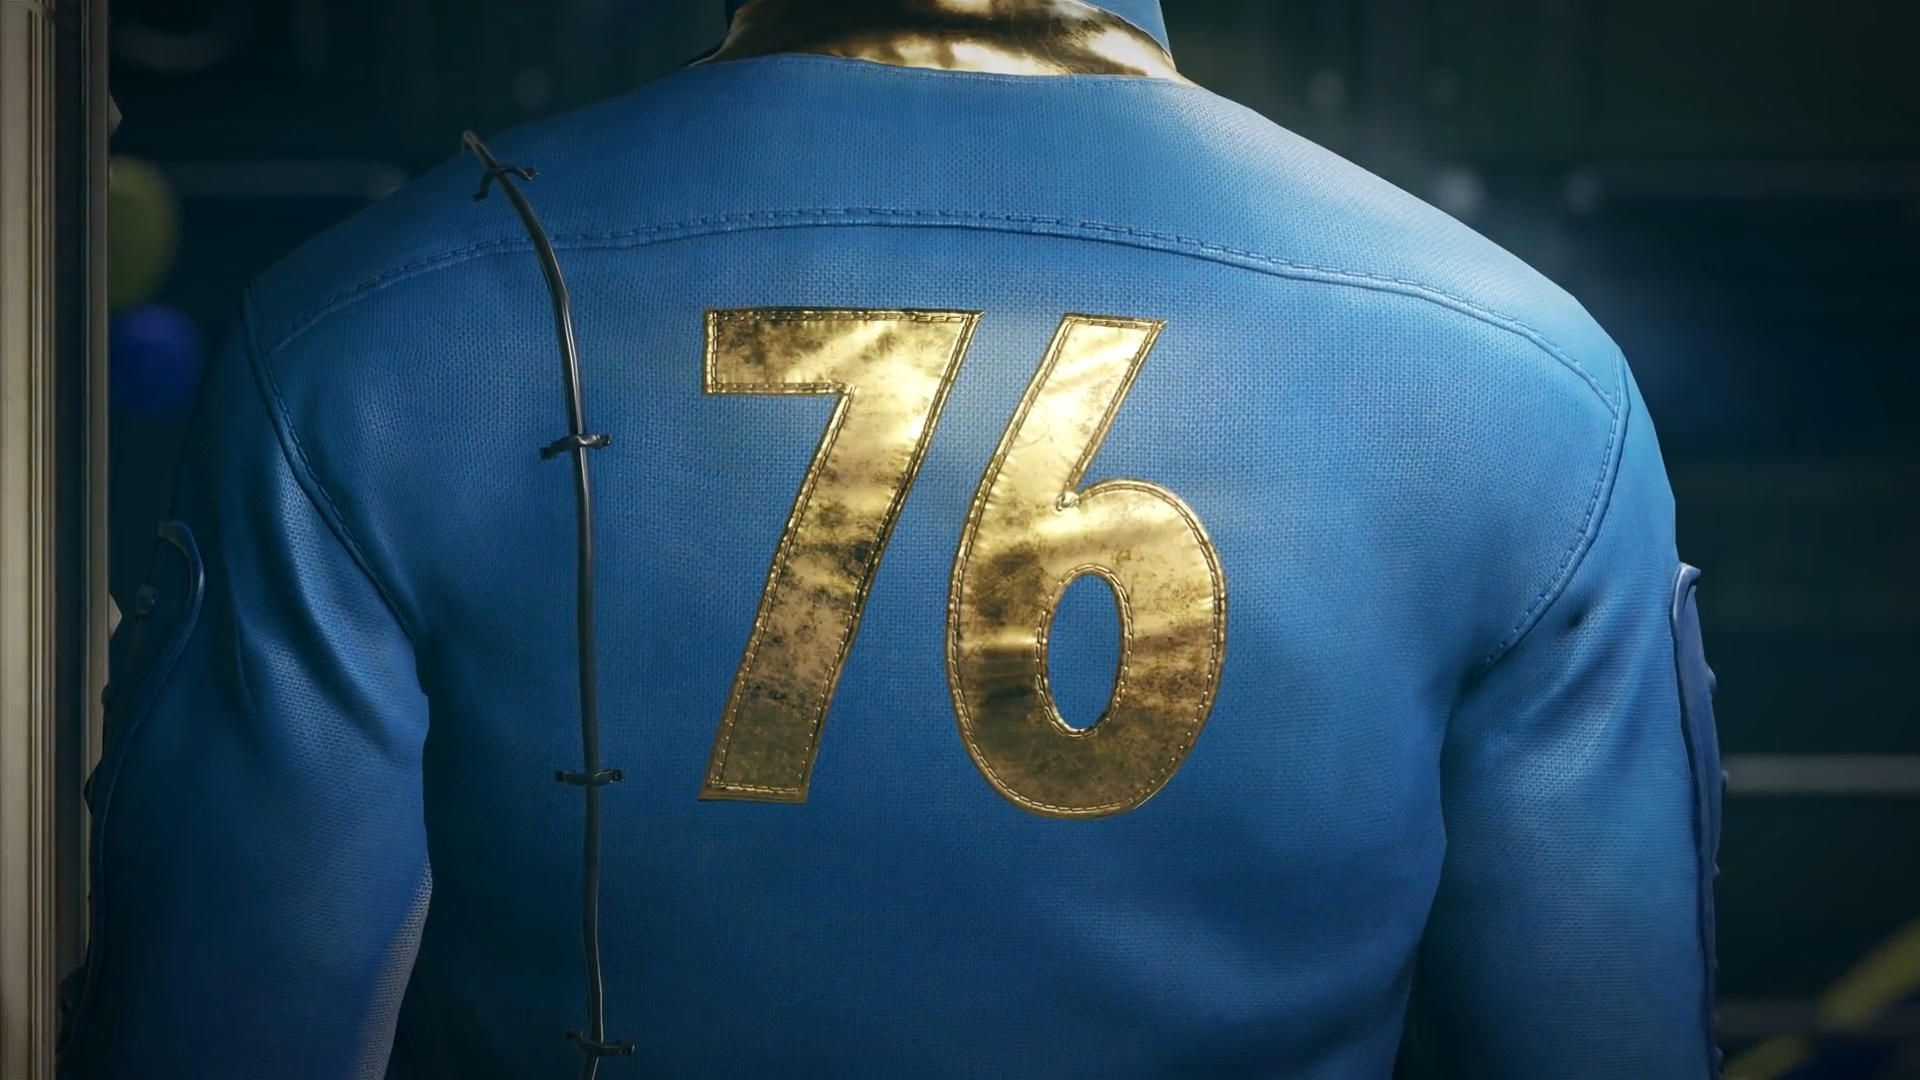 Fallout 76 beta release date announced for Xbox One, PS4 and PC